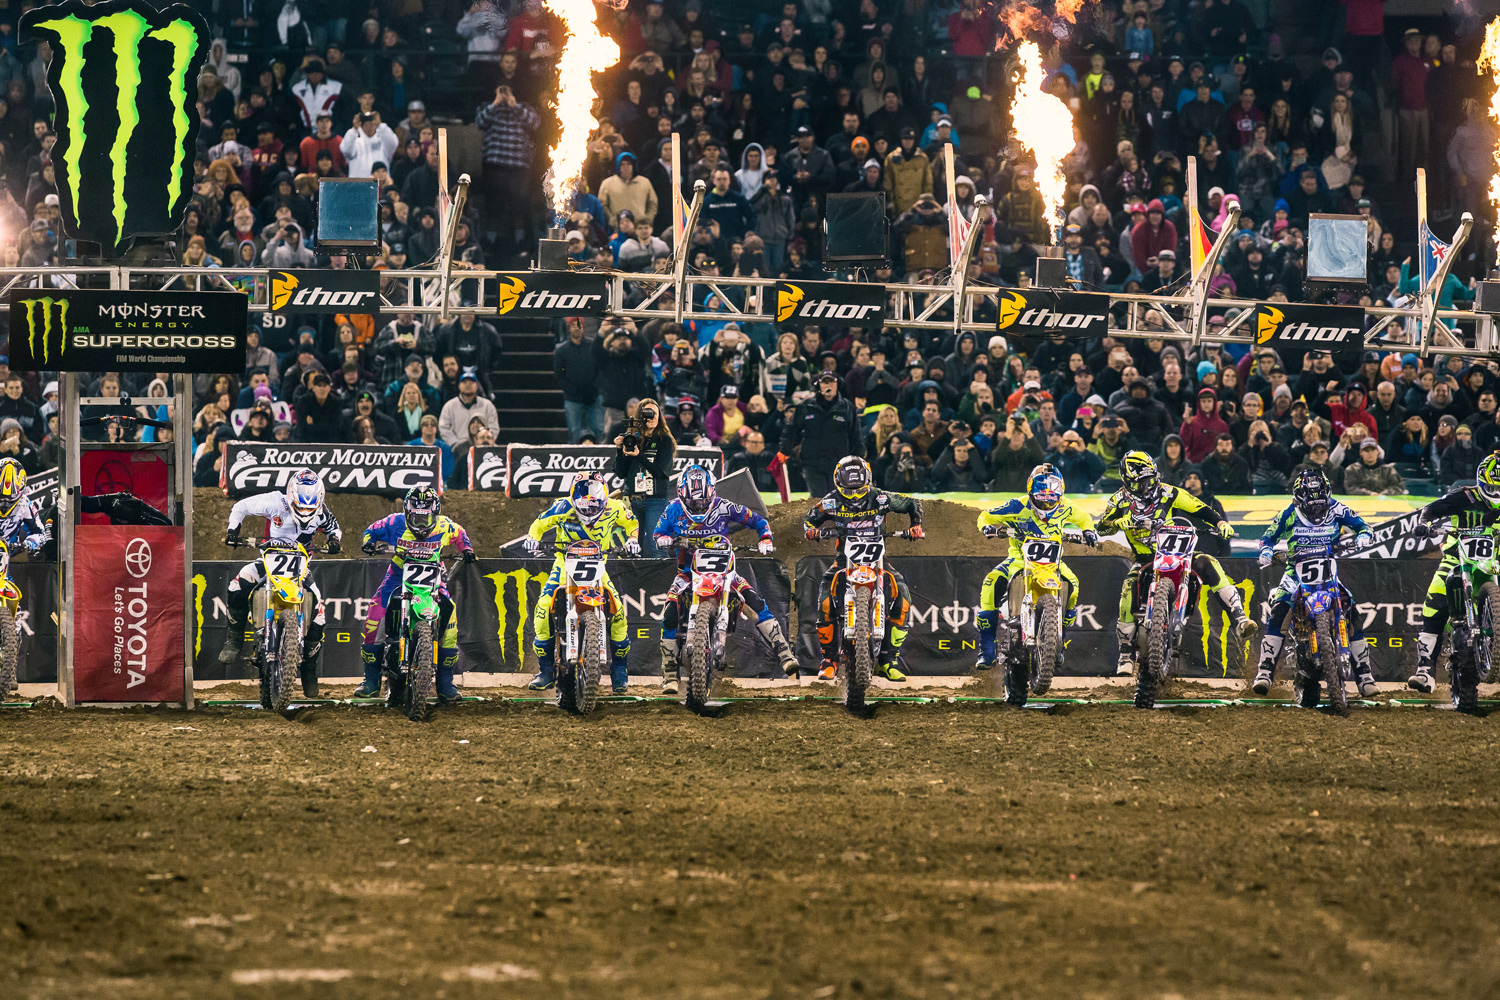 The 450 Class blasts off the line for the first main event of 2015.